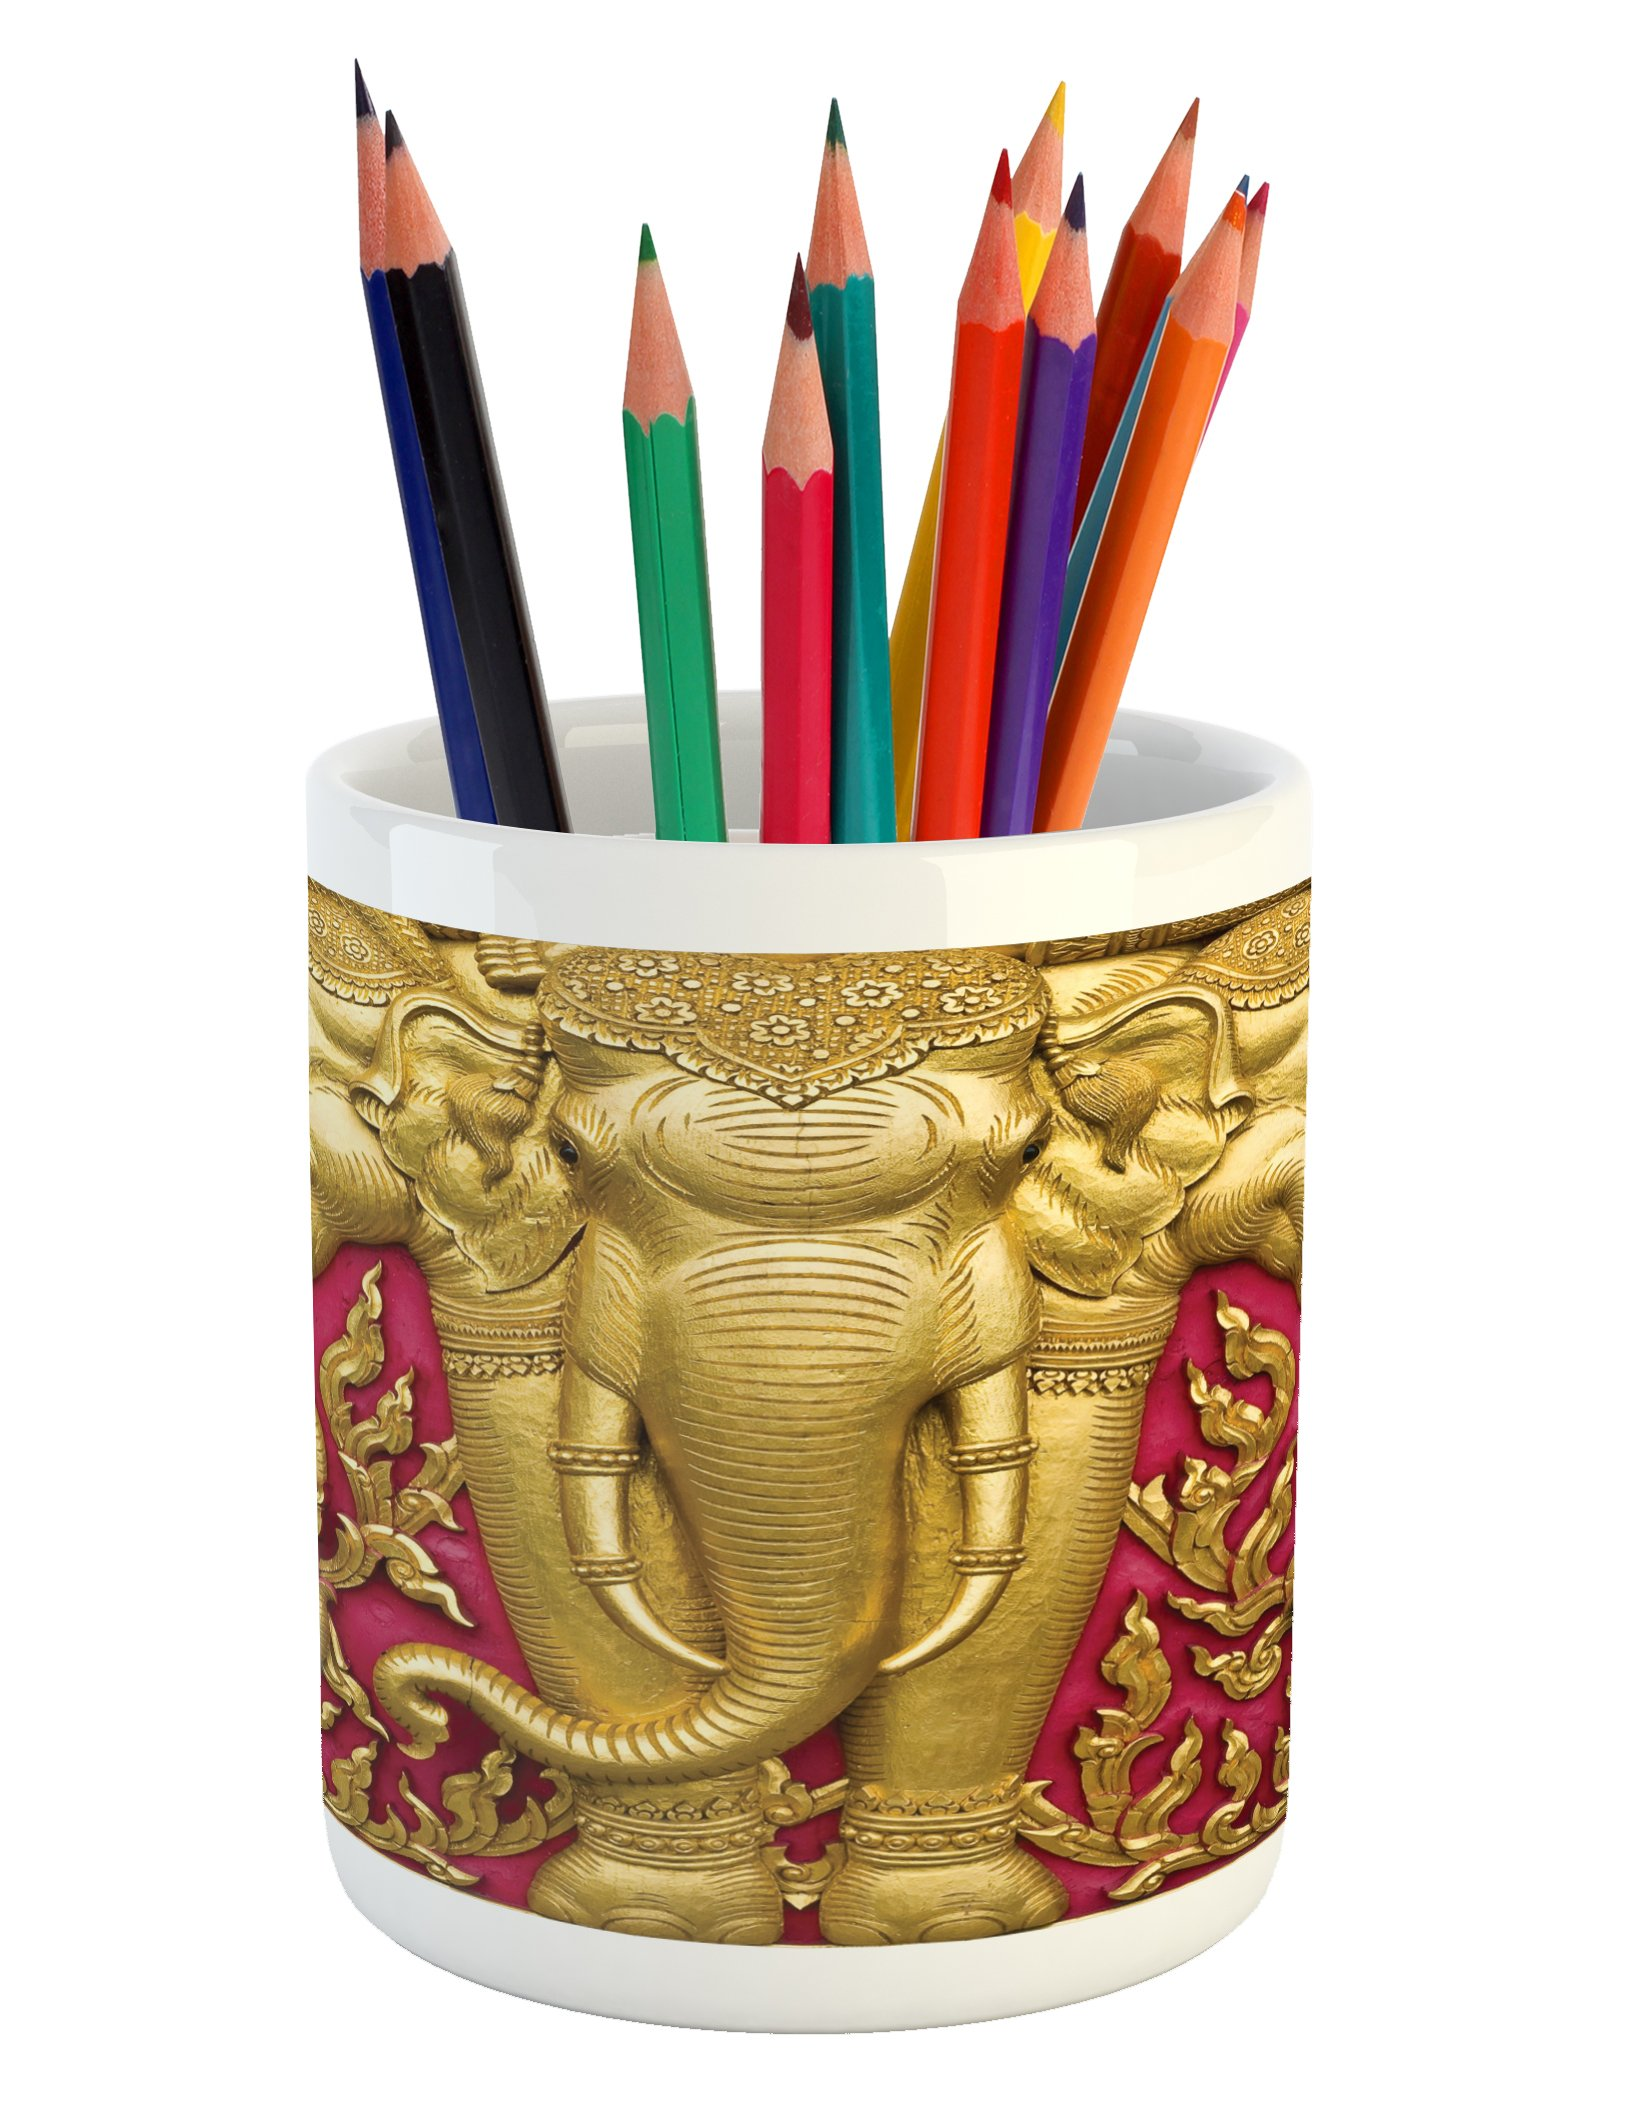 Ambesonne Elephant Pencil Pen Holder, Yellow Toned Elephant Motif on Door Thai Temple Spirituality Statue Classic, Printed Ceramic Pencil Pen Holder for Desk Office Accessory, Fuchsia Mustard by Ambesonne